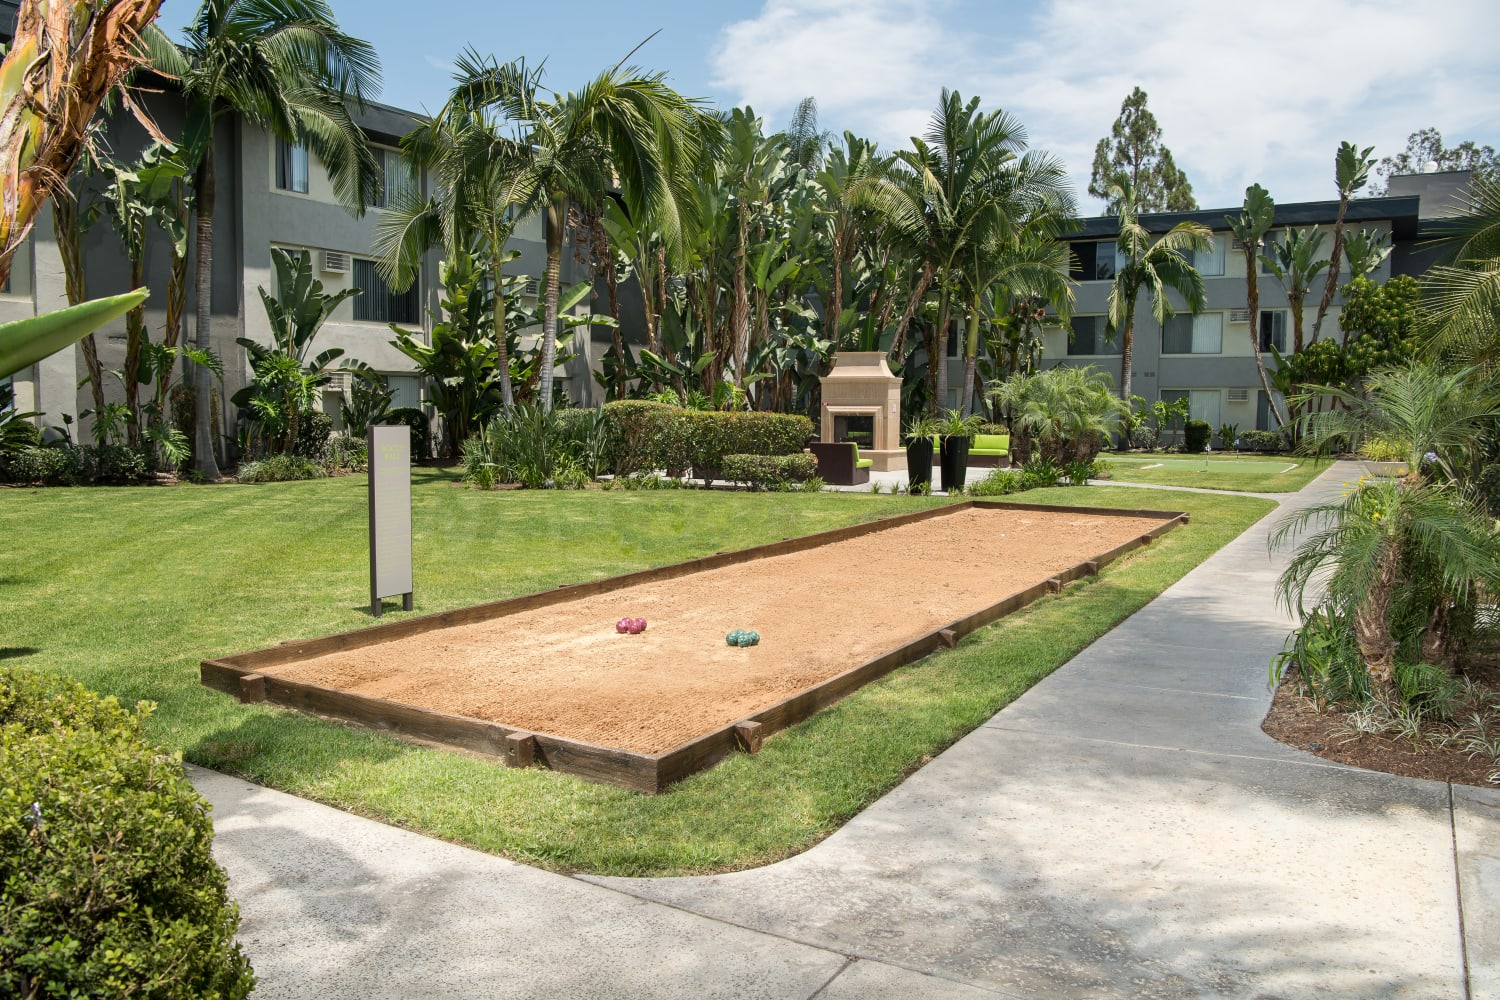 UCE Apartment Homes in Fullerton, California, offers a variety of outdoor games